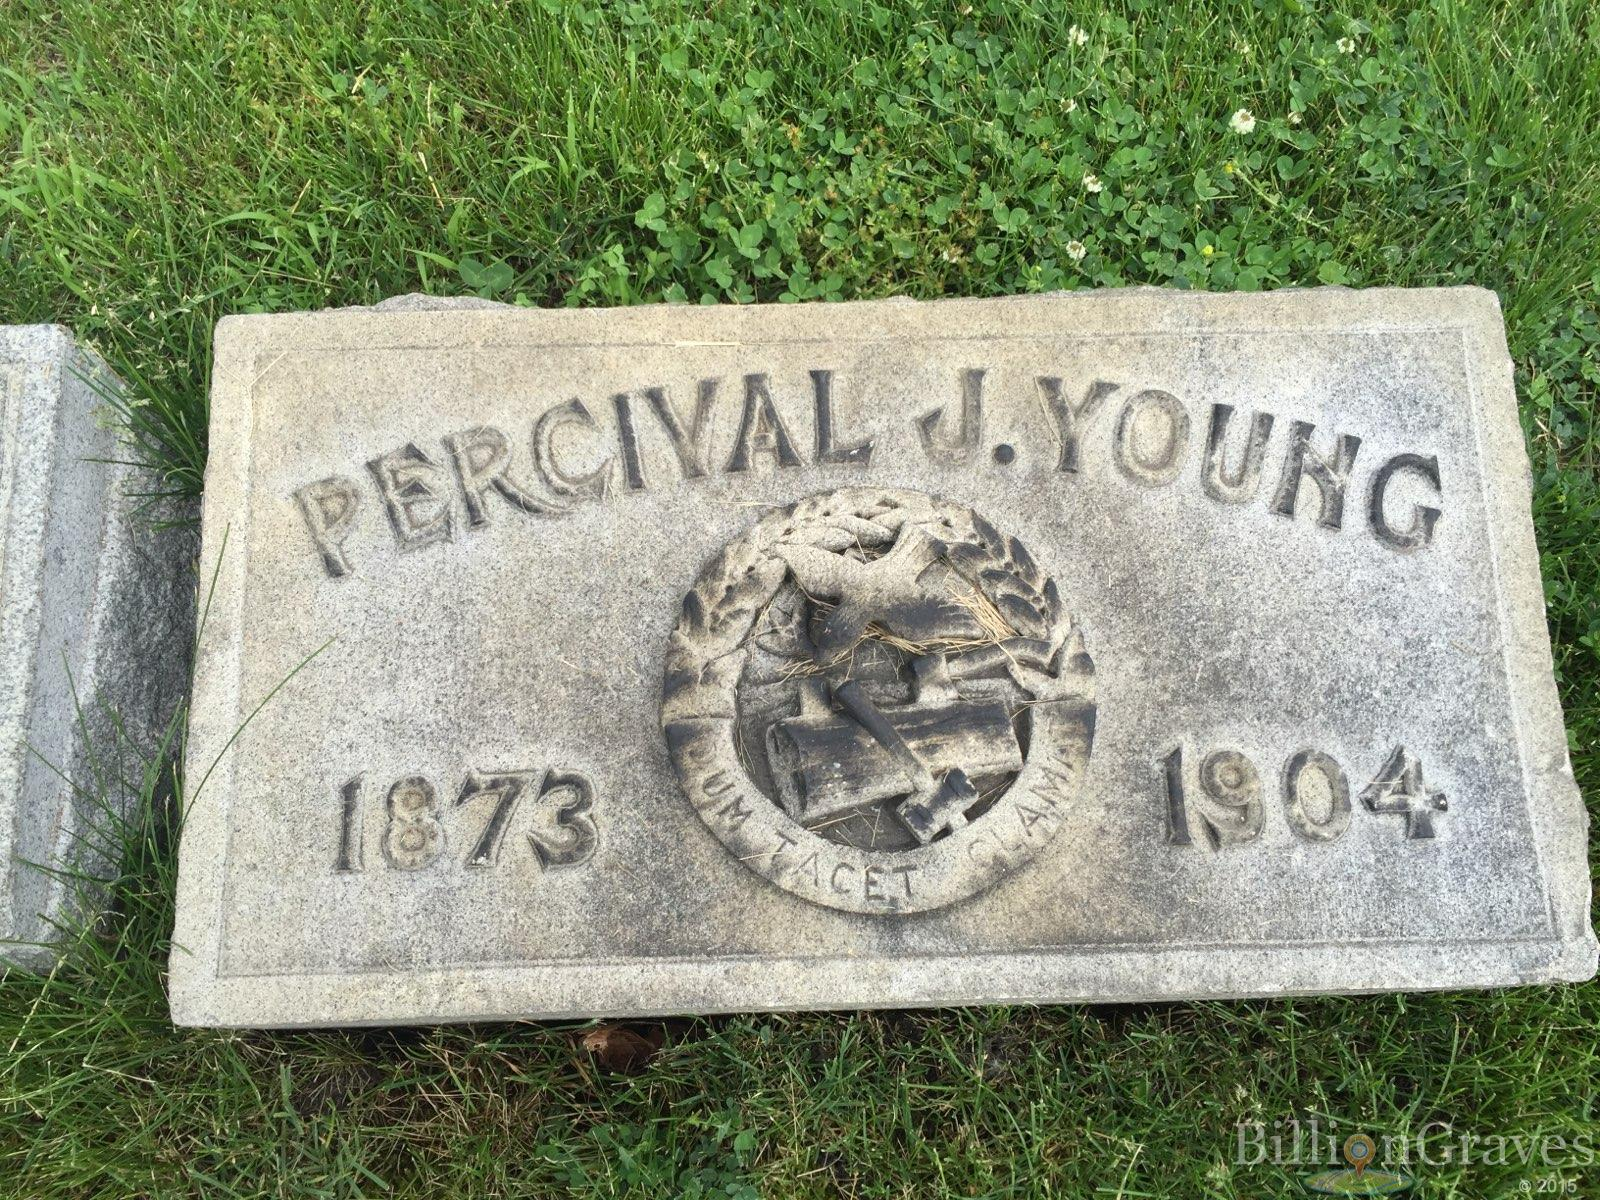 young, percival young, chicago cemetery, fraternity, club, society, cemetery, gravestone symbols, genealogy, BillionGraves, social organizations, flag holder, gravestone marker, BillionGraves